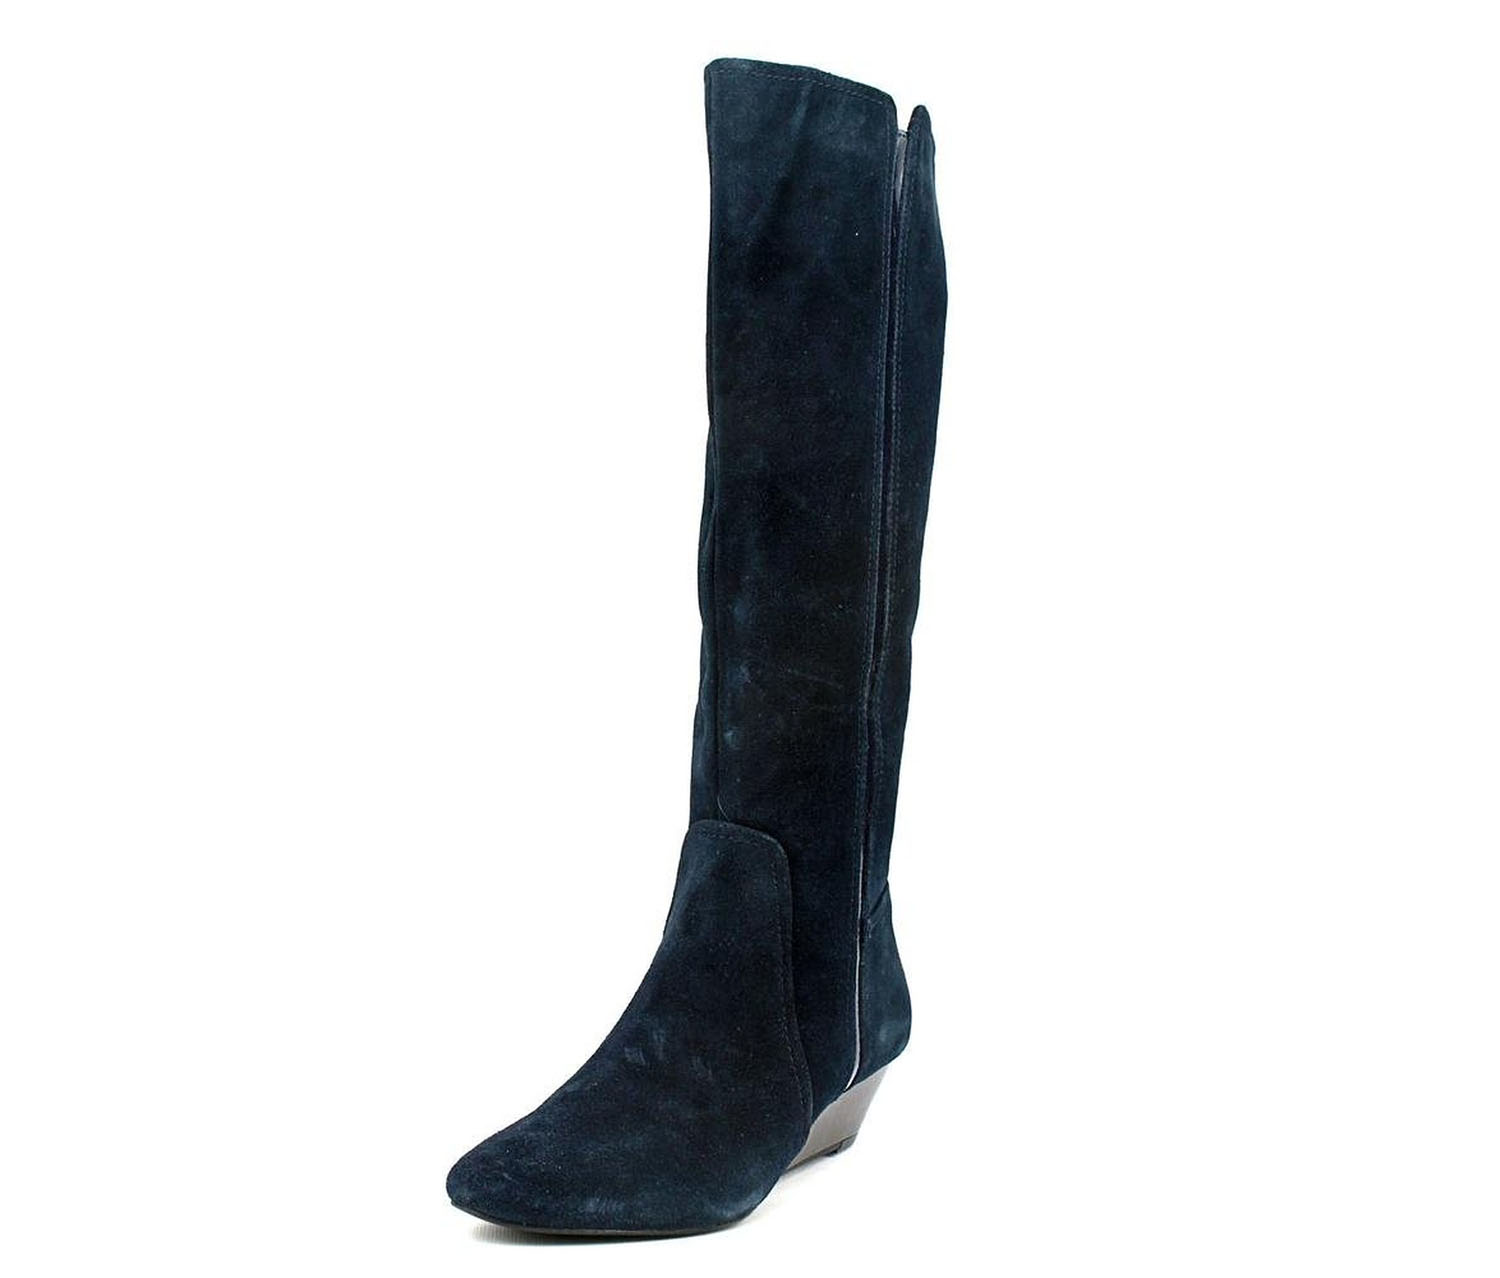 s swaye suede fashion knee high boots navy brands